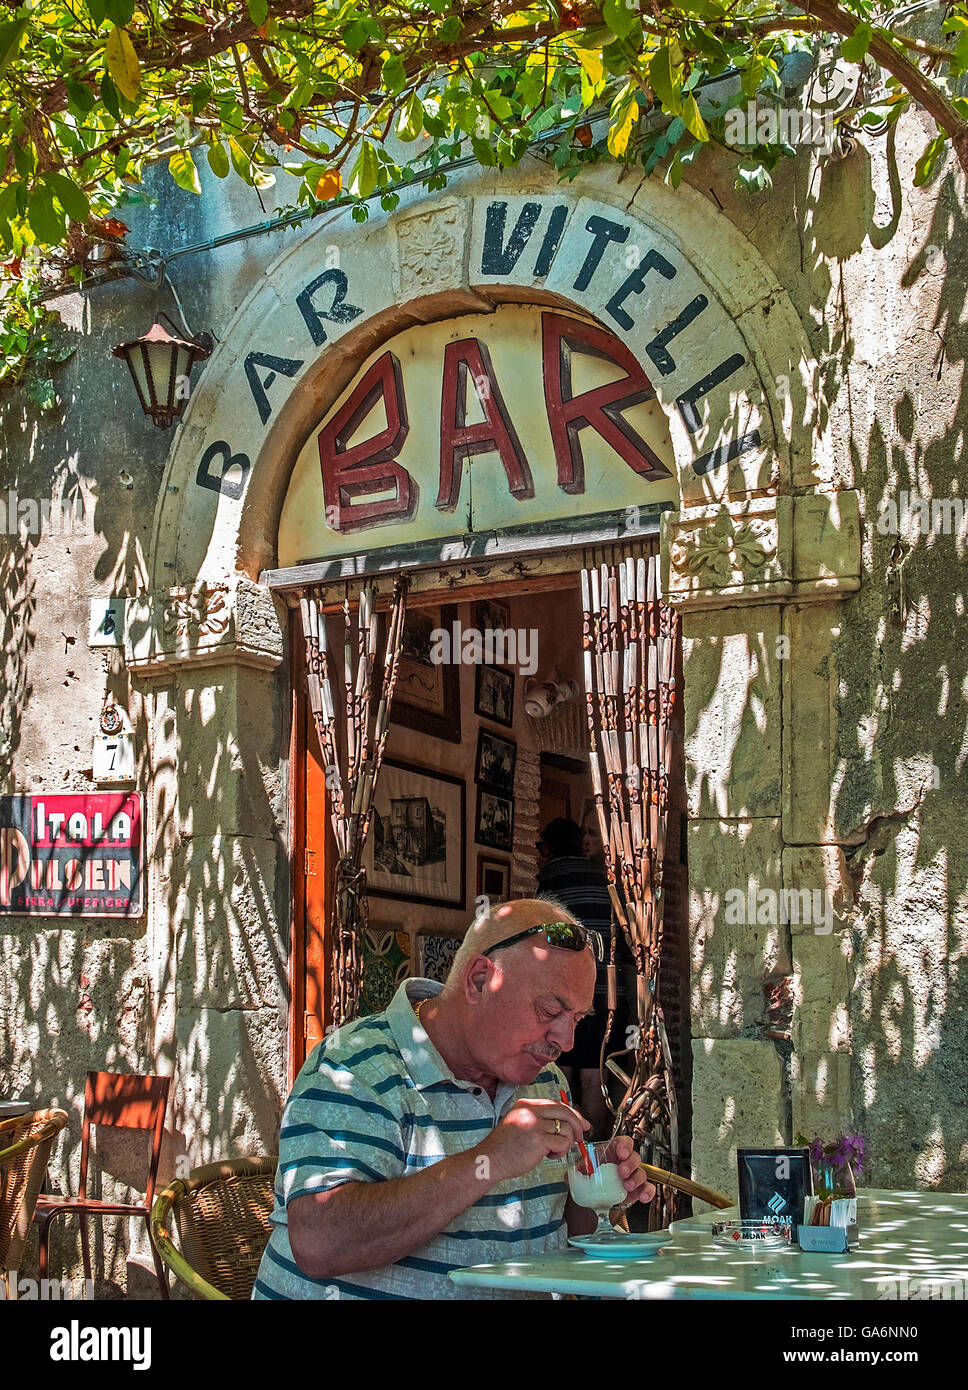 Bar Vitelli in the medieval village of Savoca, Sicily, the bar was used in the filming of the Godfather movie. - Stock Image